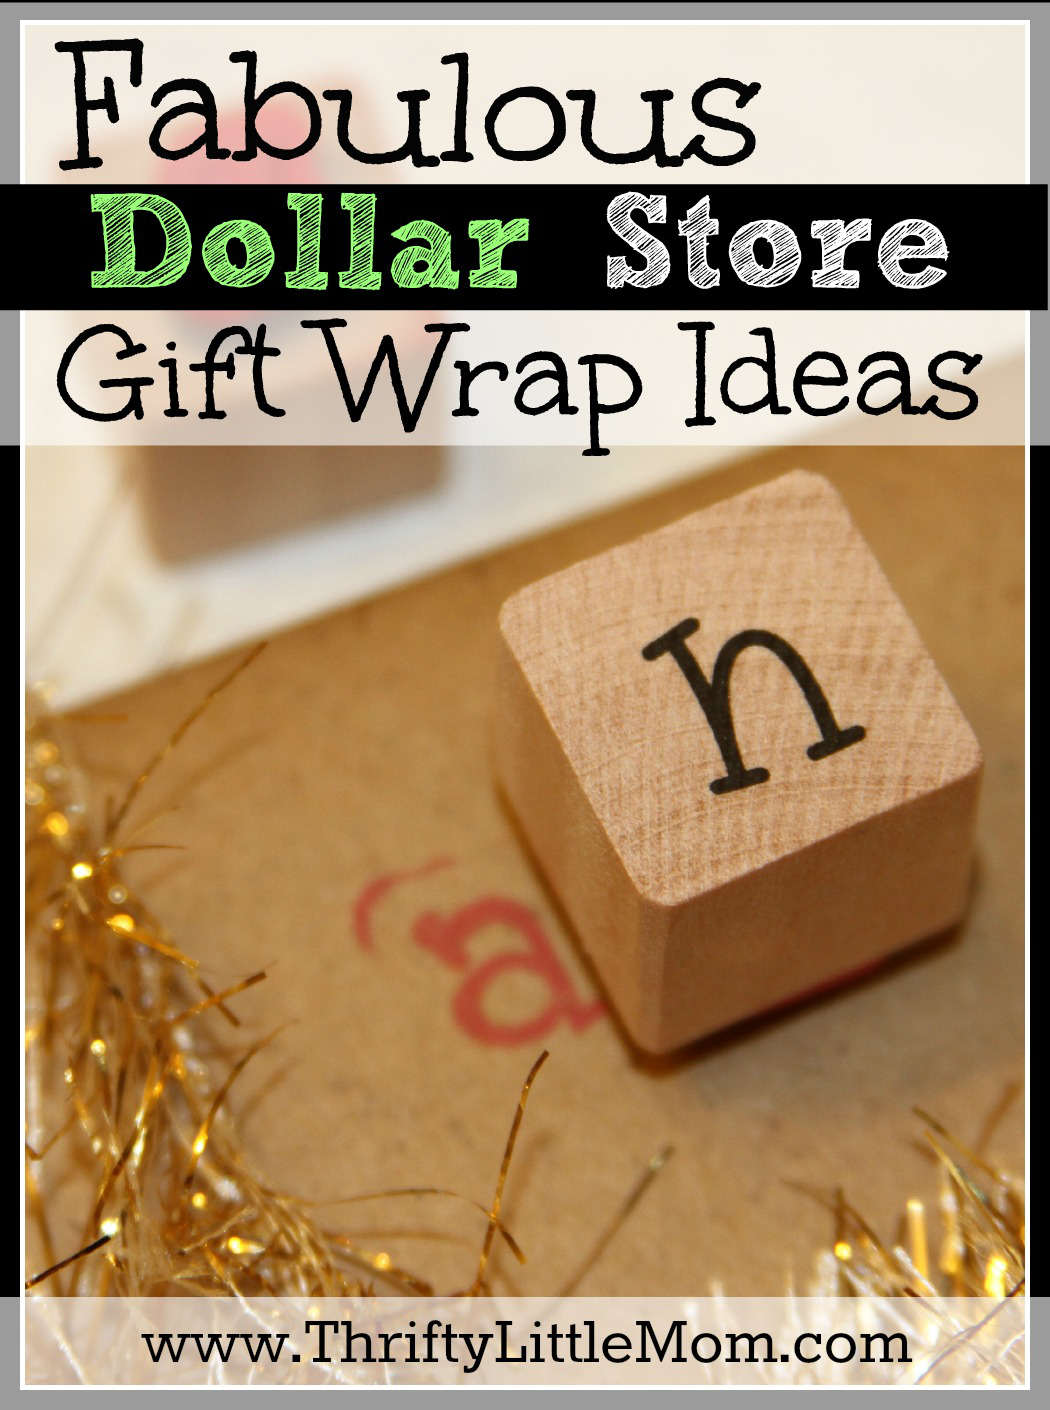 Fabulous Dollar Store Gift Wrap Ideas